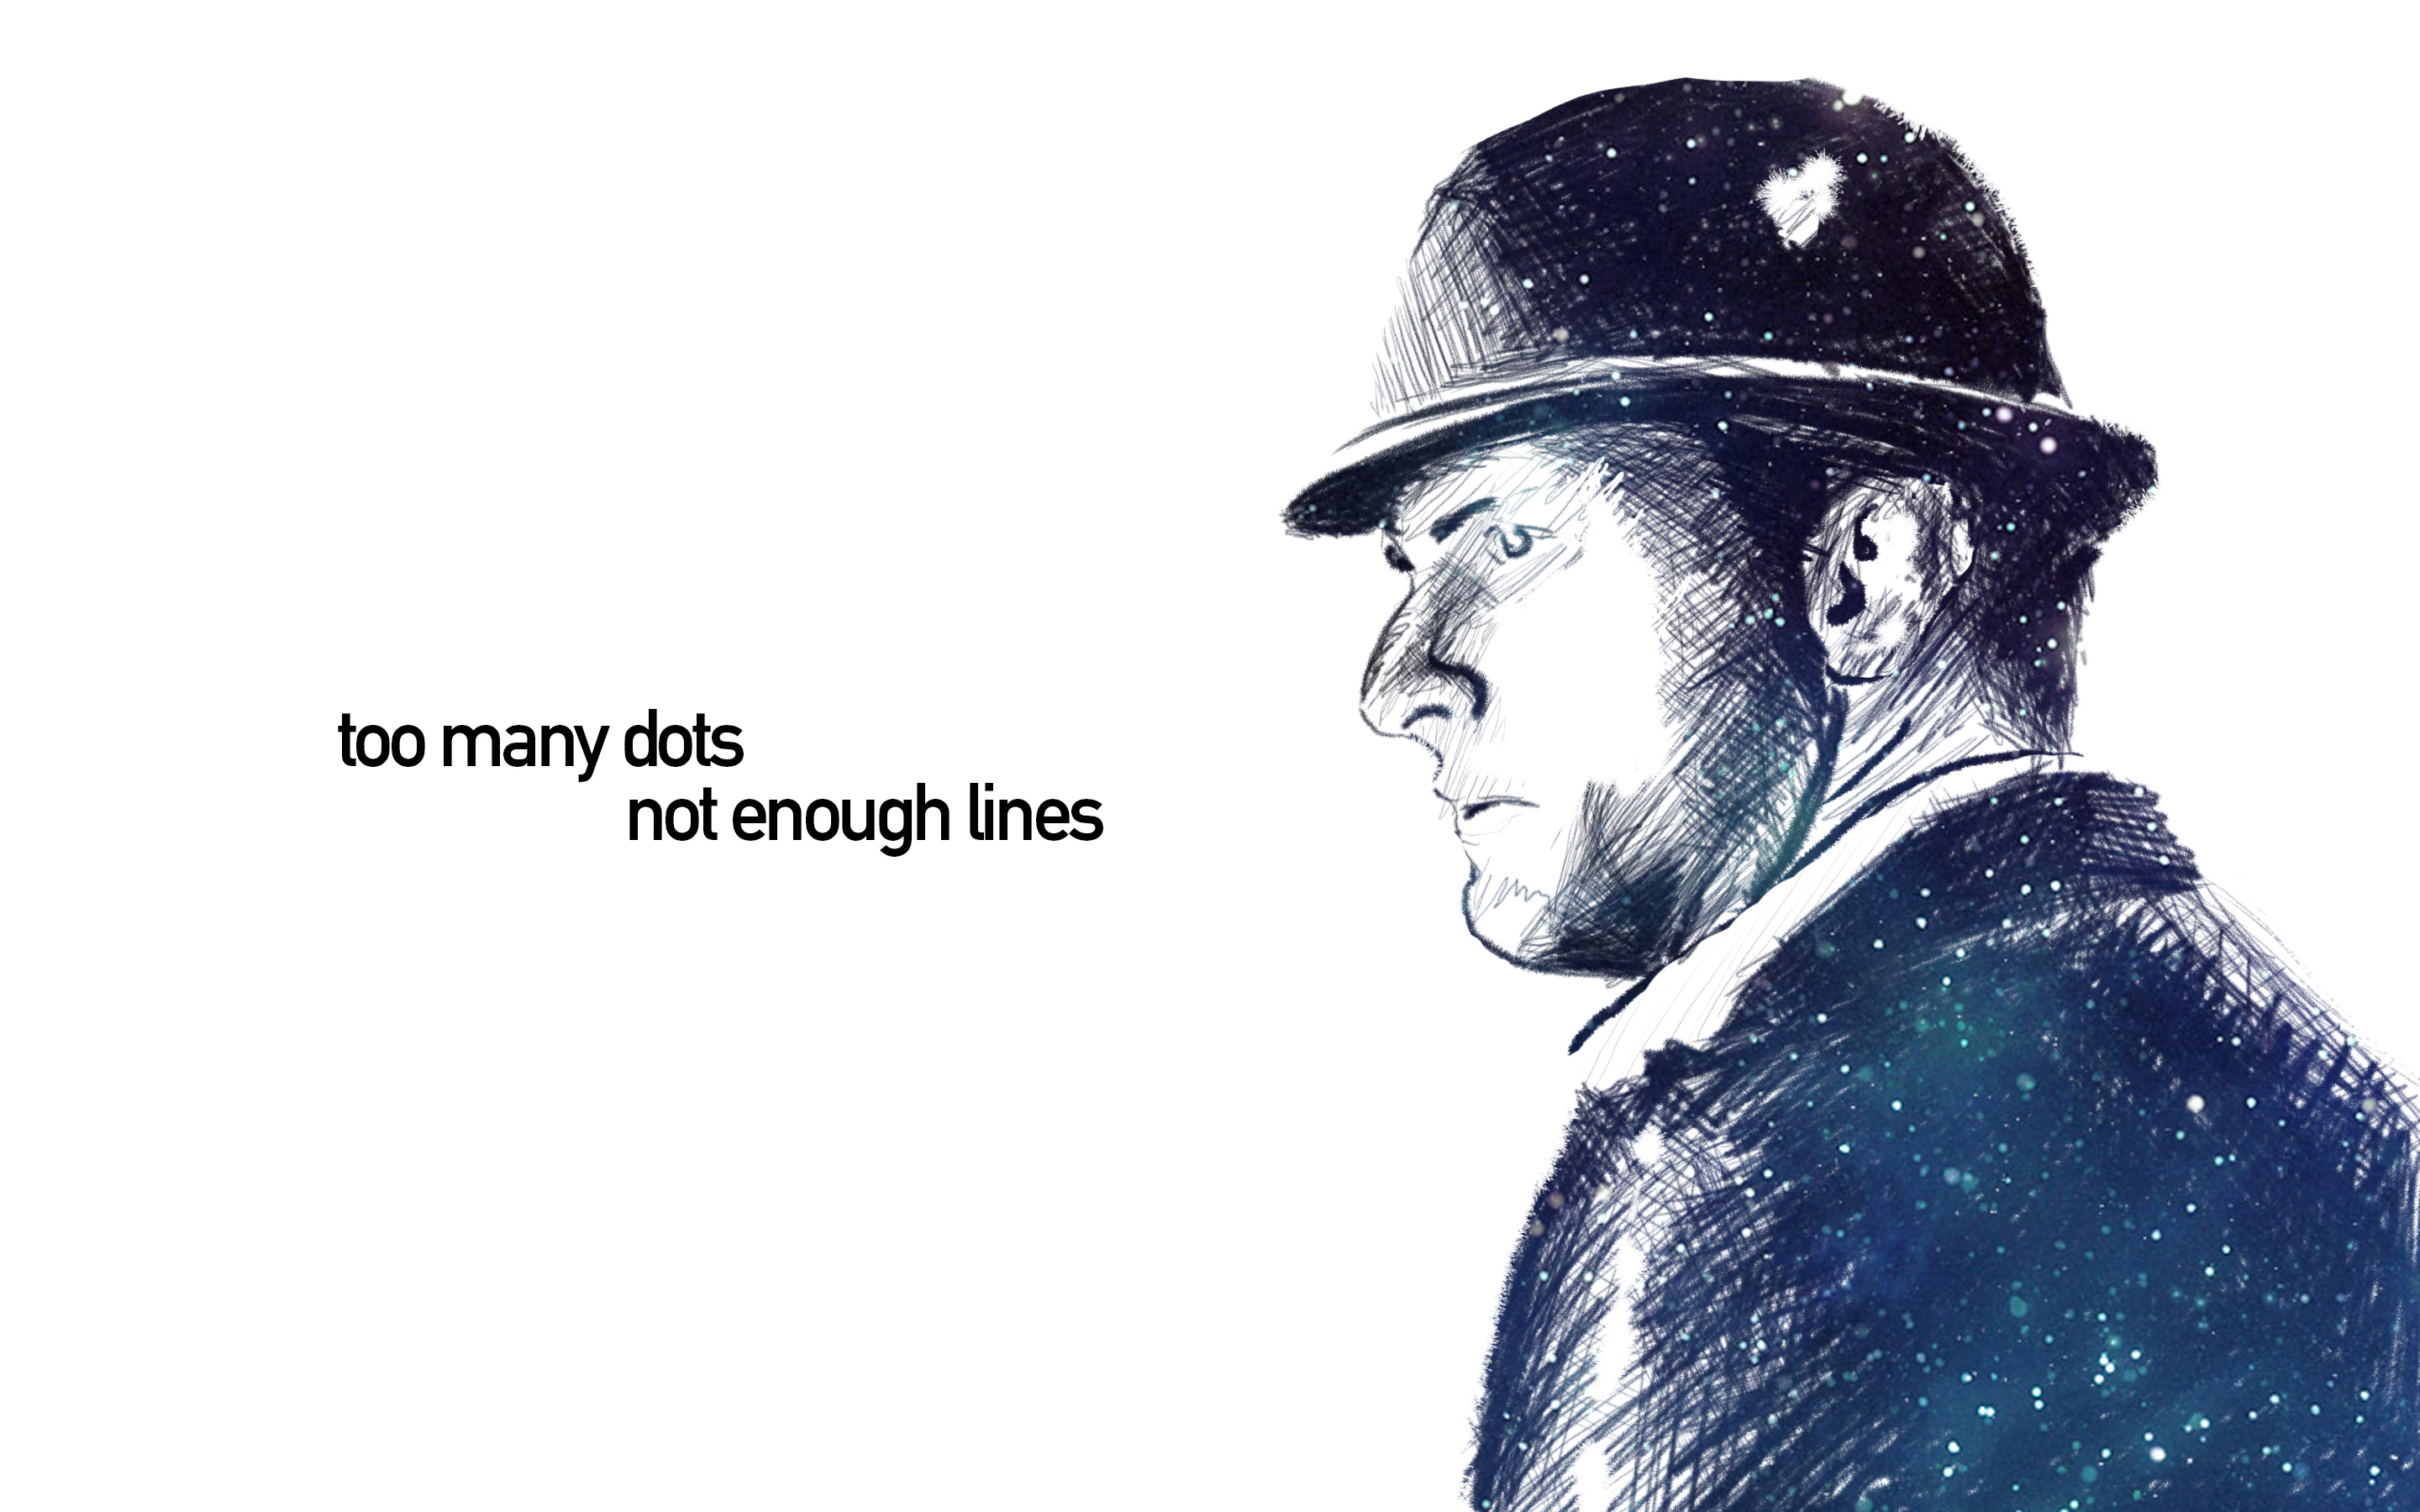 An illustration of Joe Miller from the TV series The Expanse, with the quote